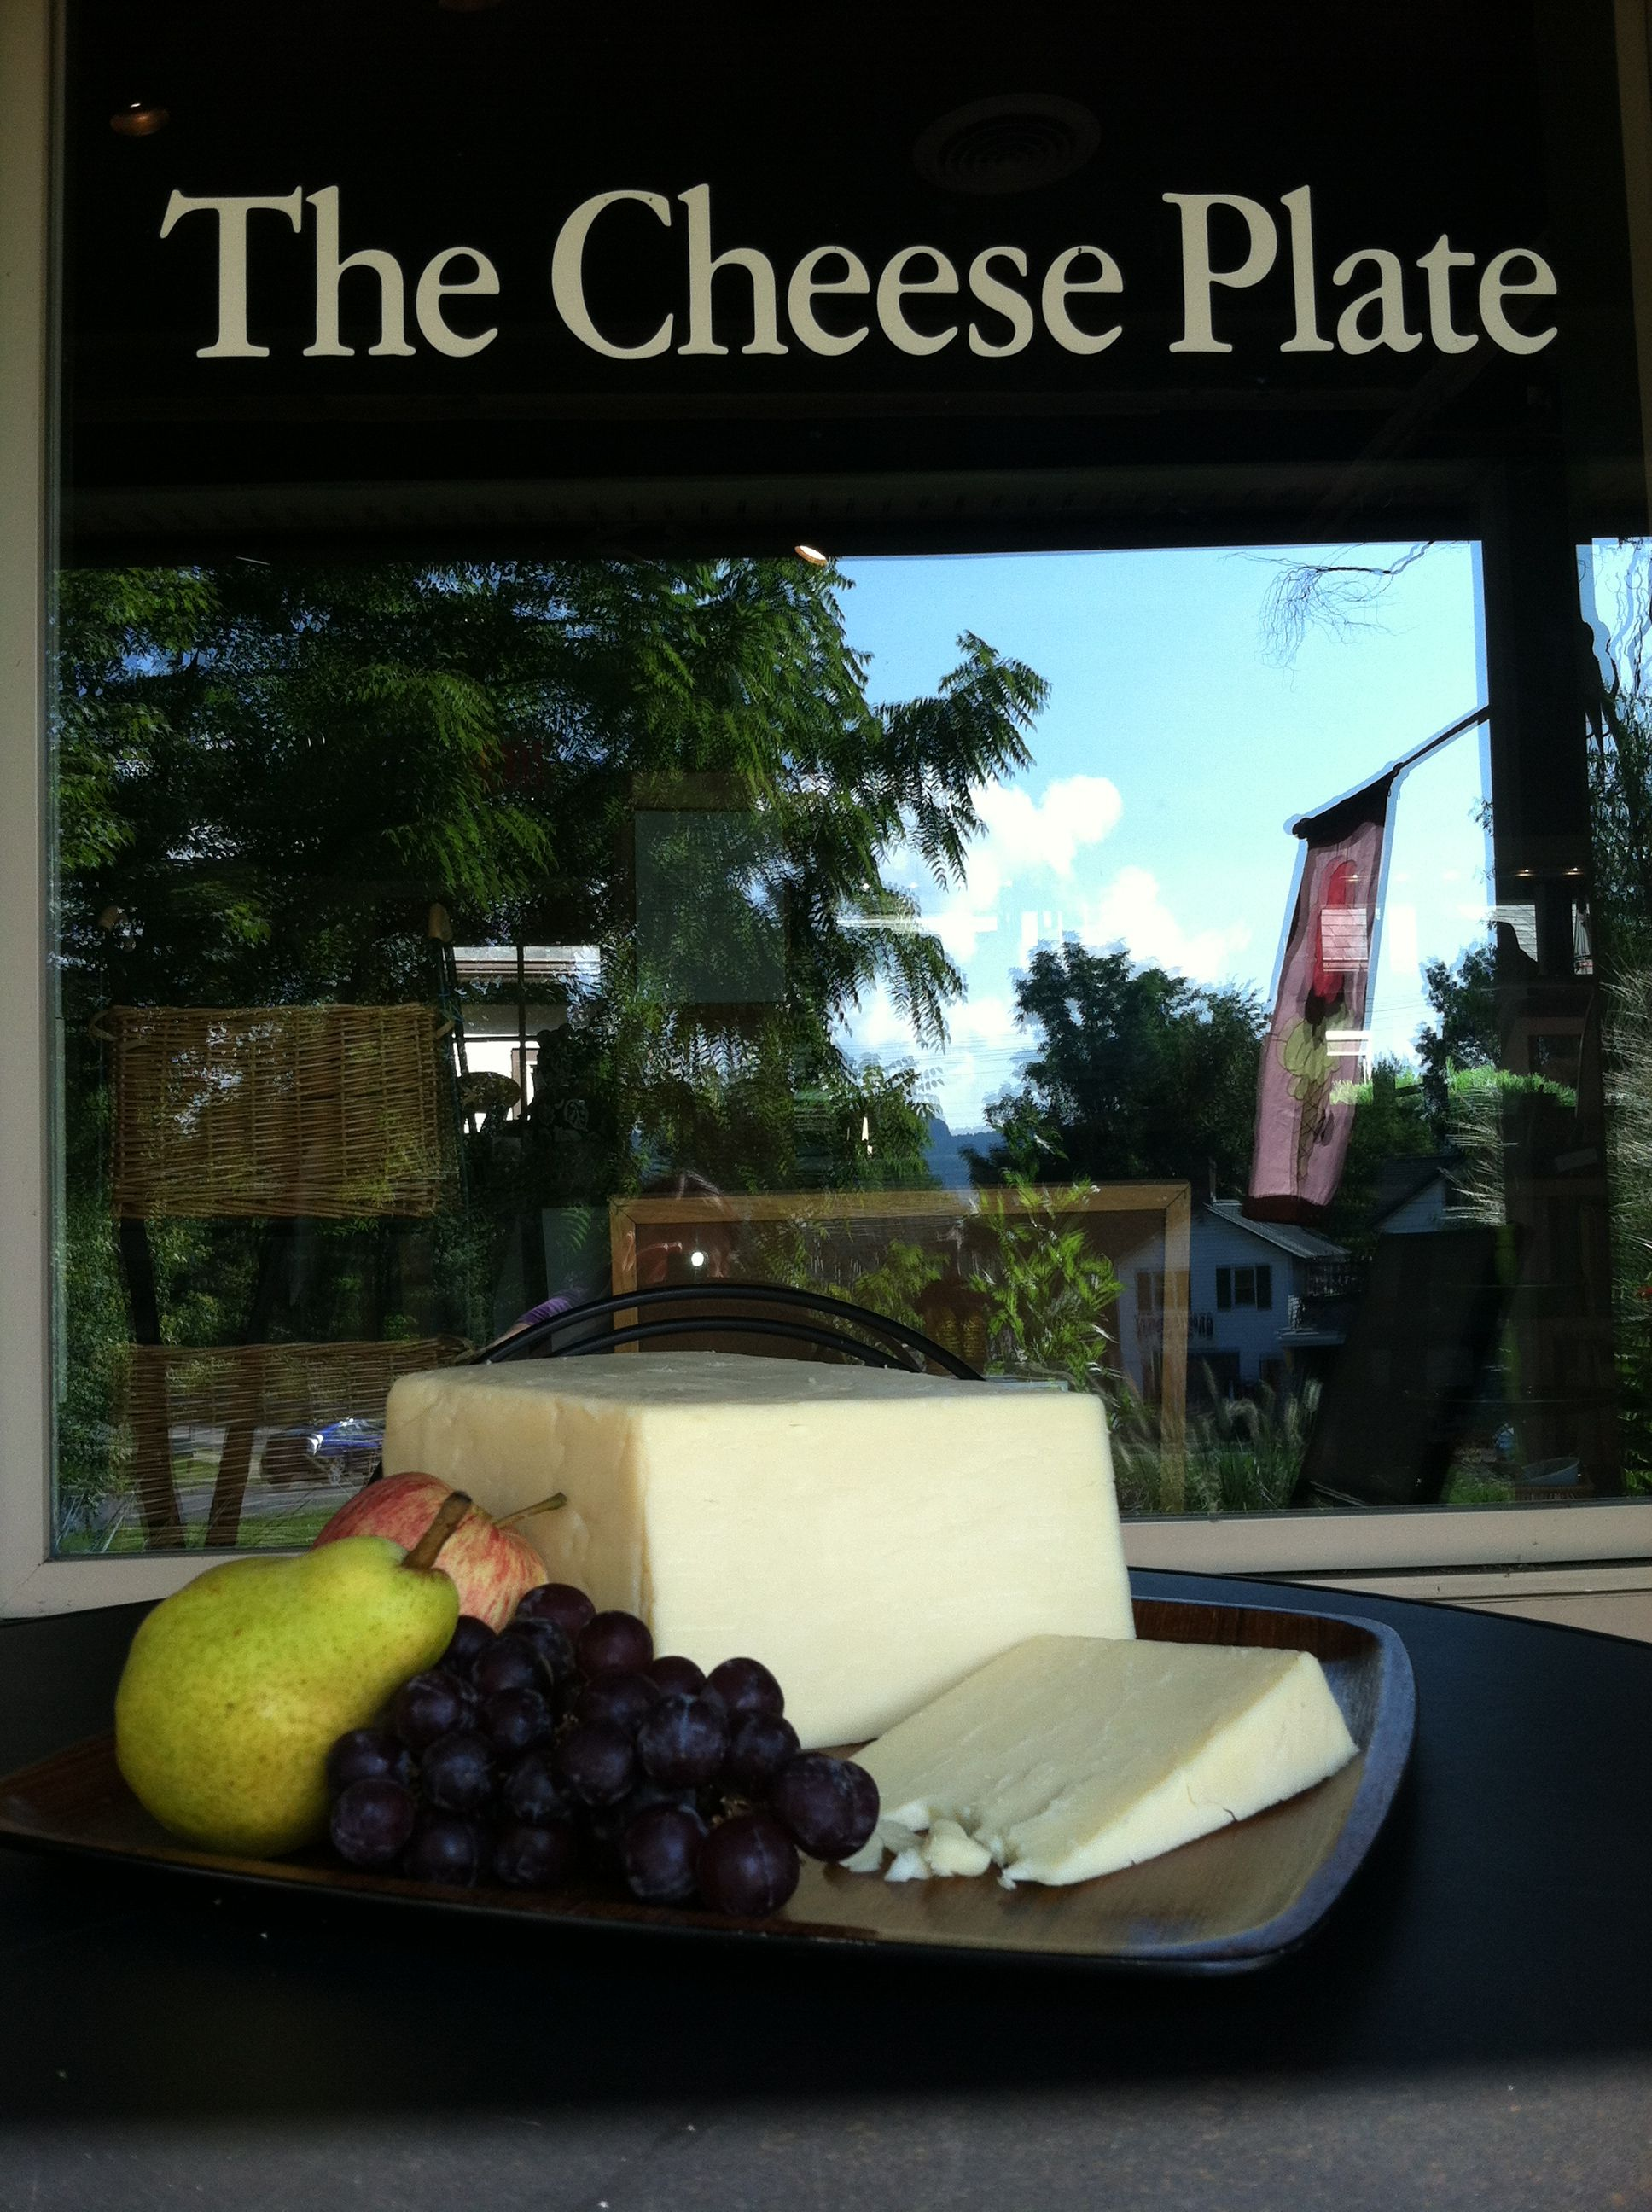 The Cheese Plate in New Paltz NY & The Cheese Plate in New Paltz NY | Life in New Paltz NY | Pinterest